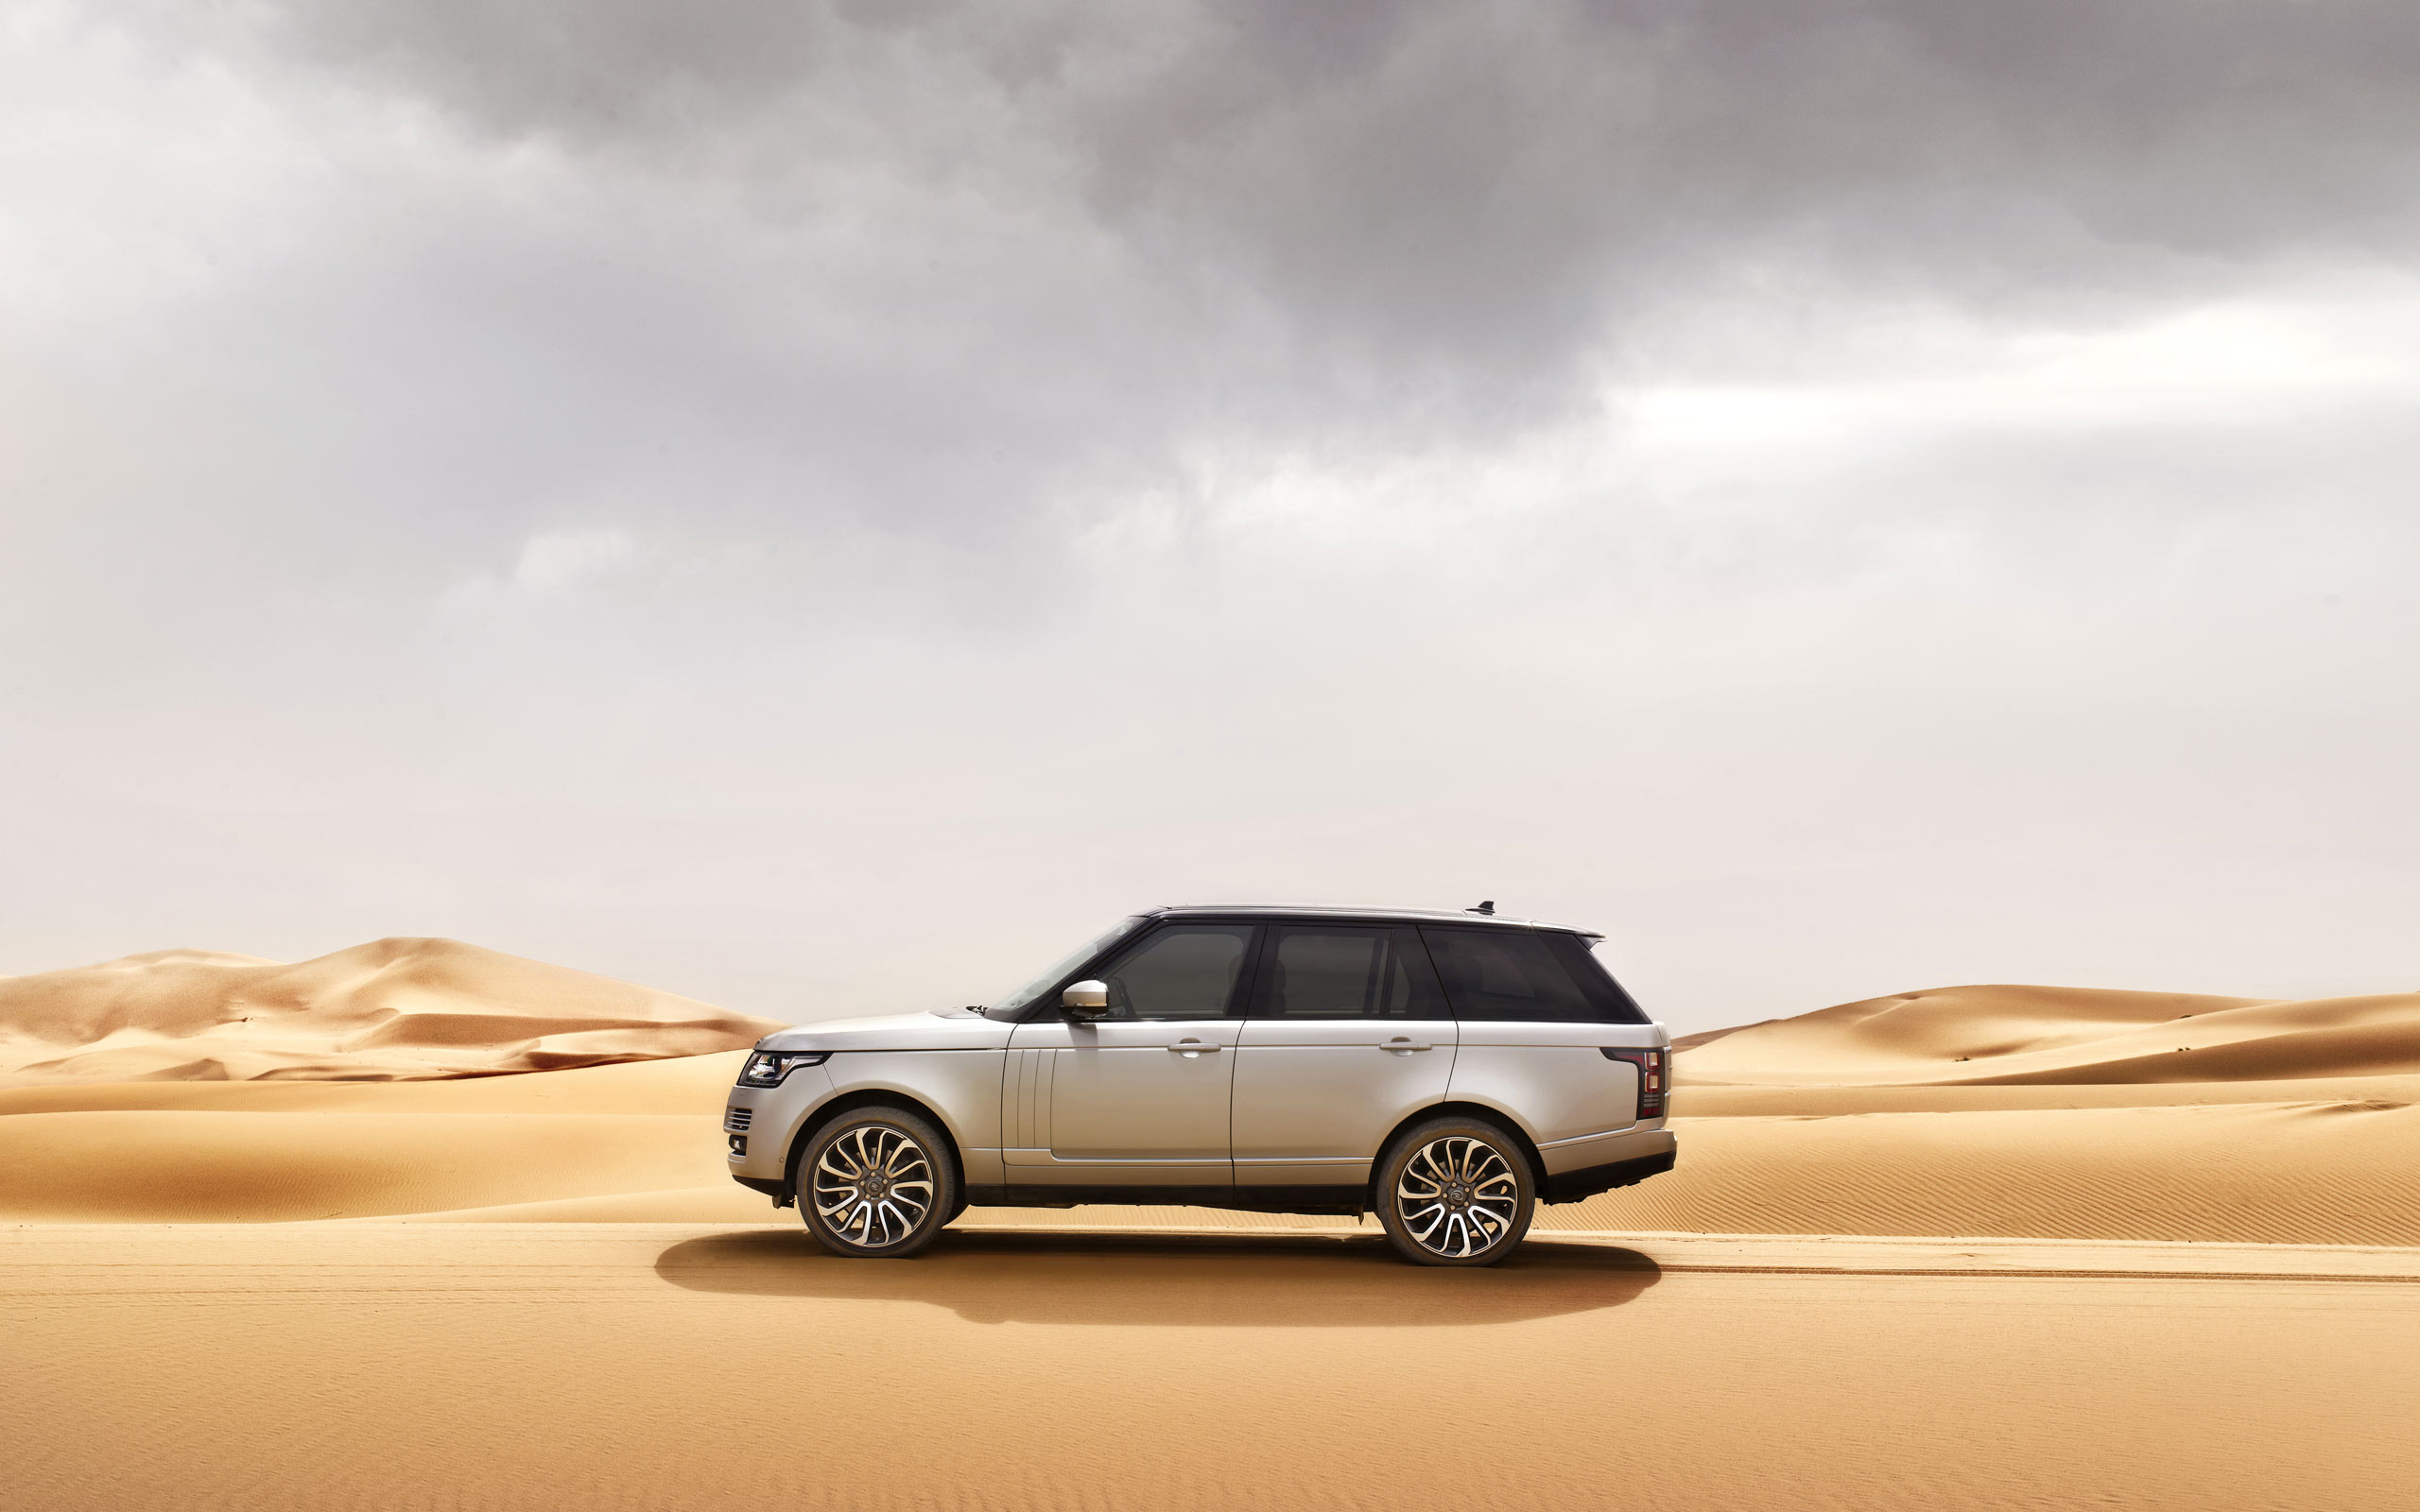 Range Rover Background